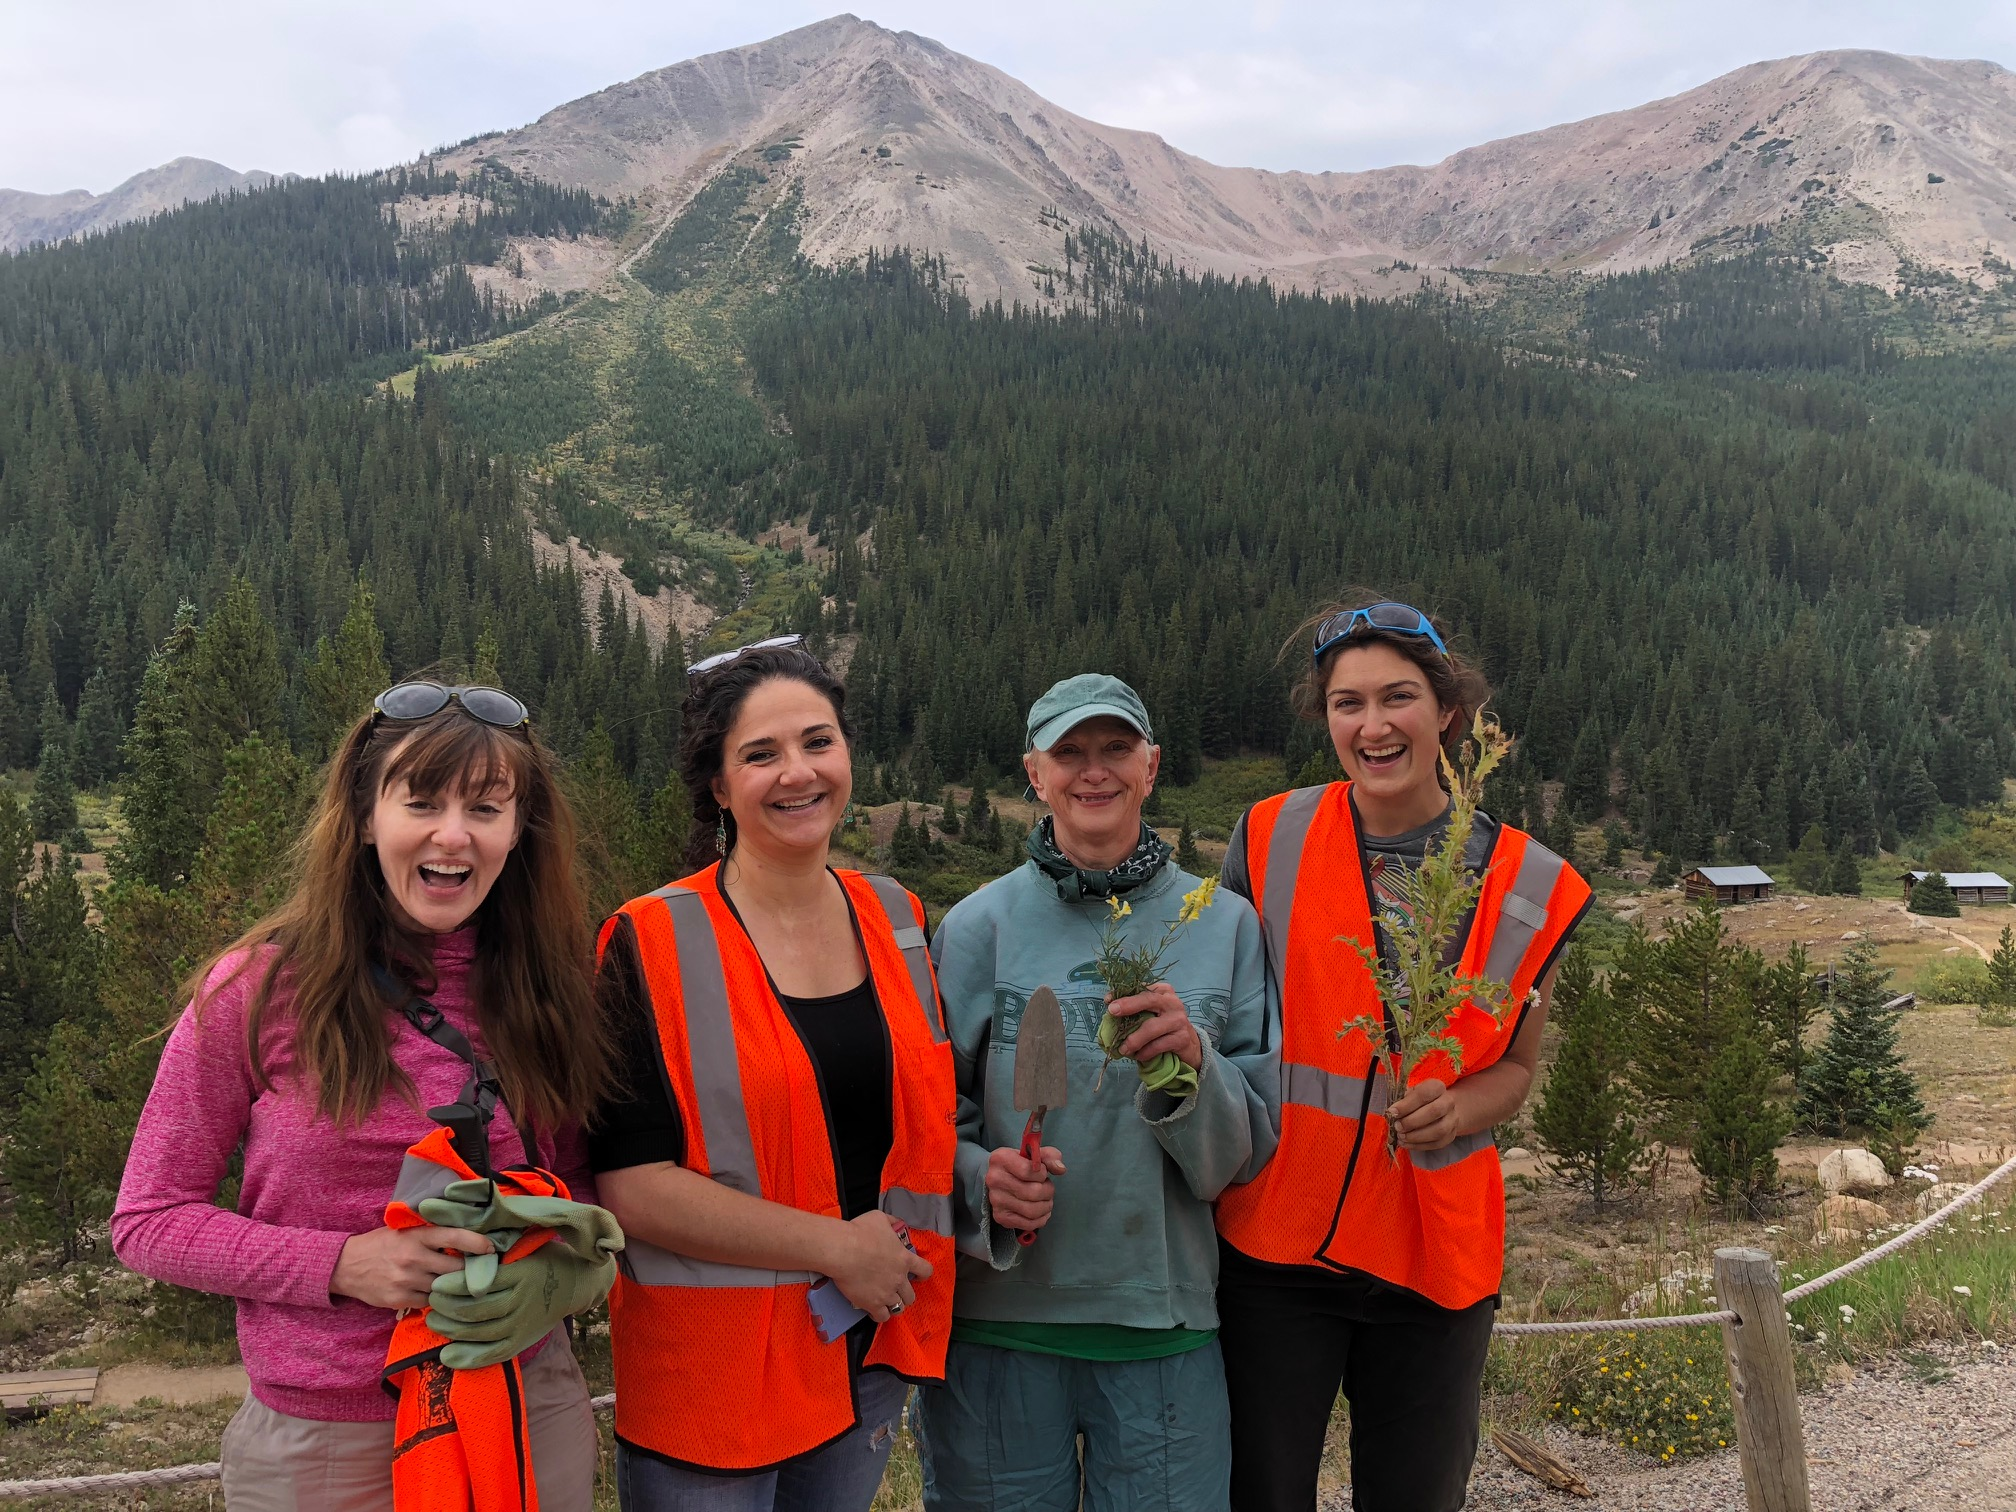 Pitkin County Weed Advisory Board group weed pull at the ghost town